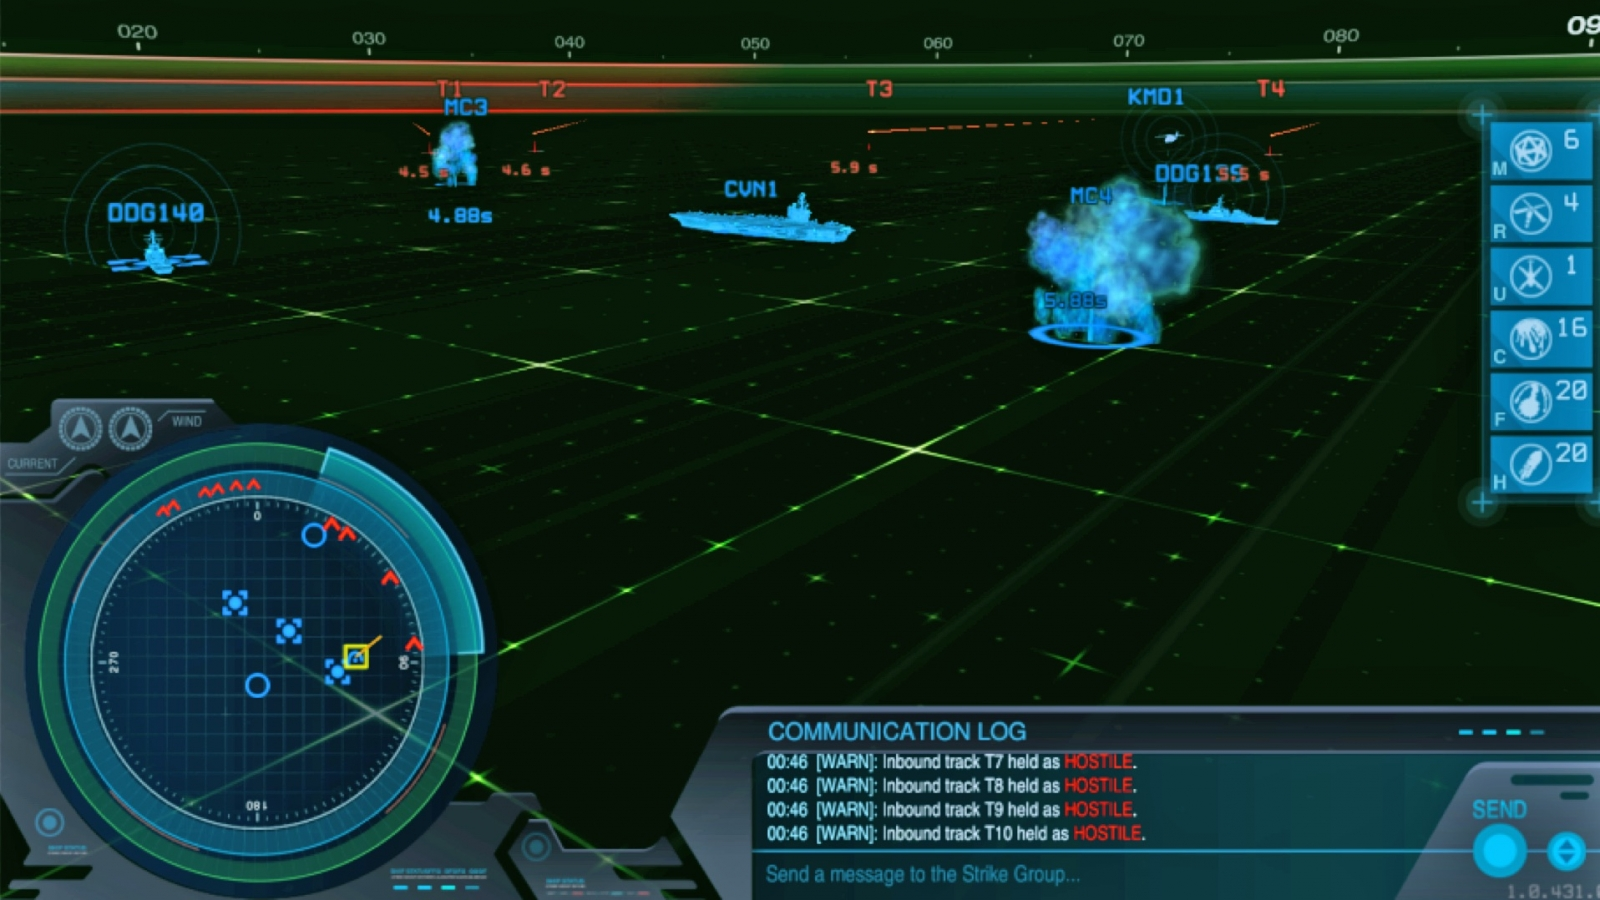 Strike Group Defender immerses users in realistic simulations to help them learn how to defend ships against missile threats in real life.